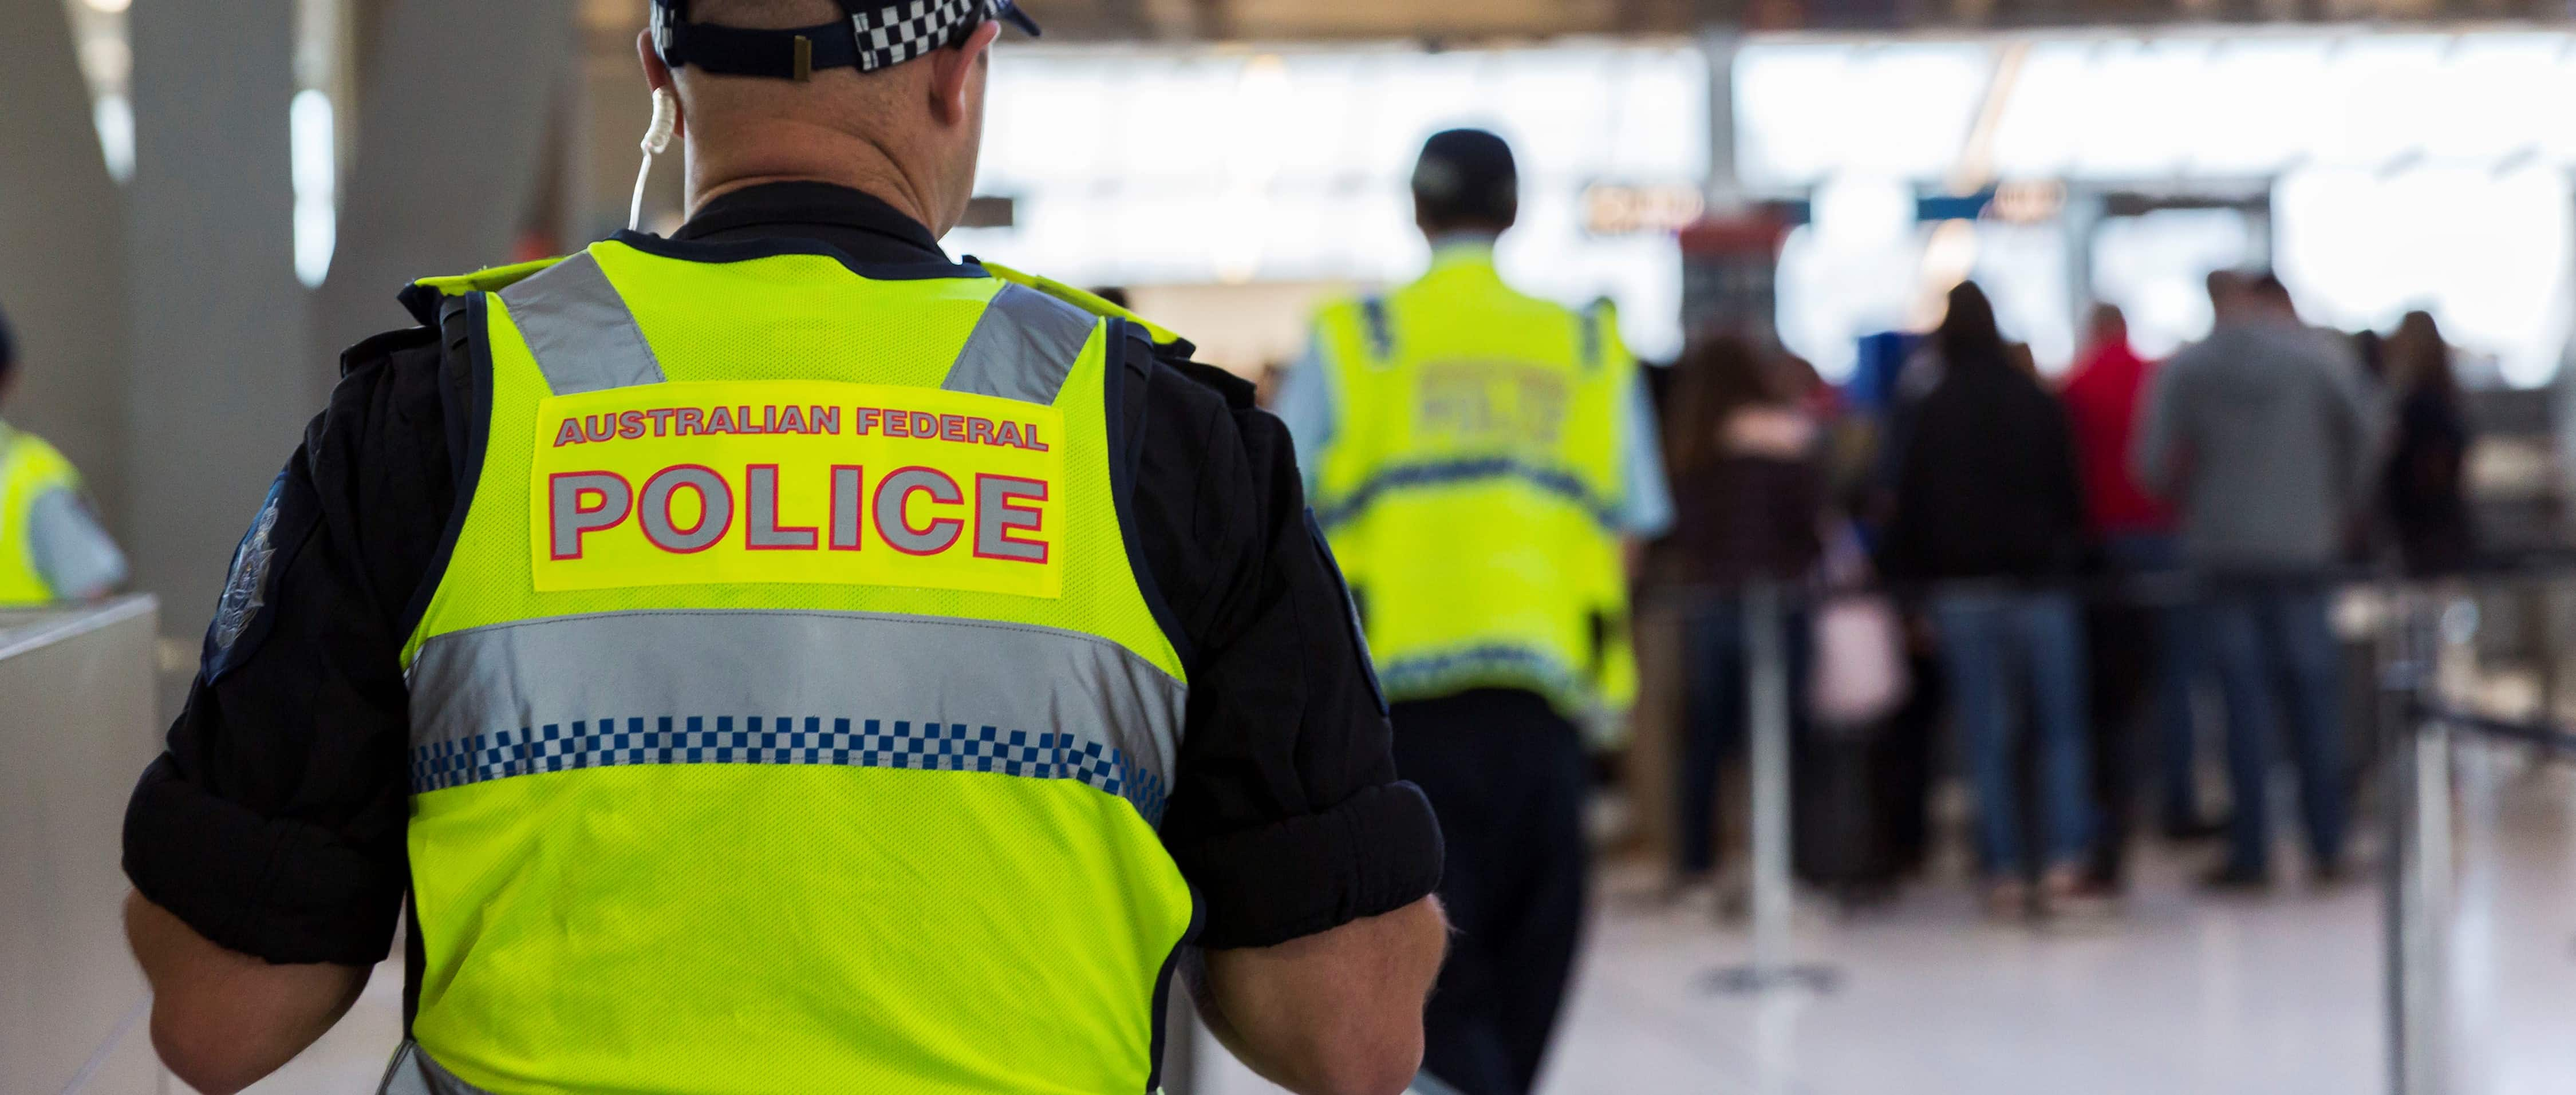 Australian police at Sydney Aiport following an aviation terror plot, July 2017 (Photo: Brook Mitchell/Getty Images)